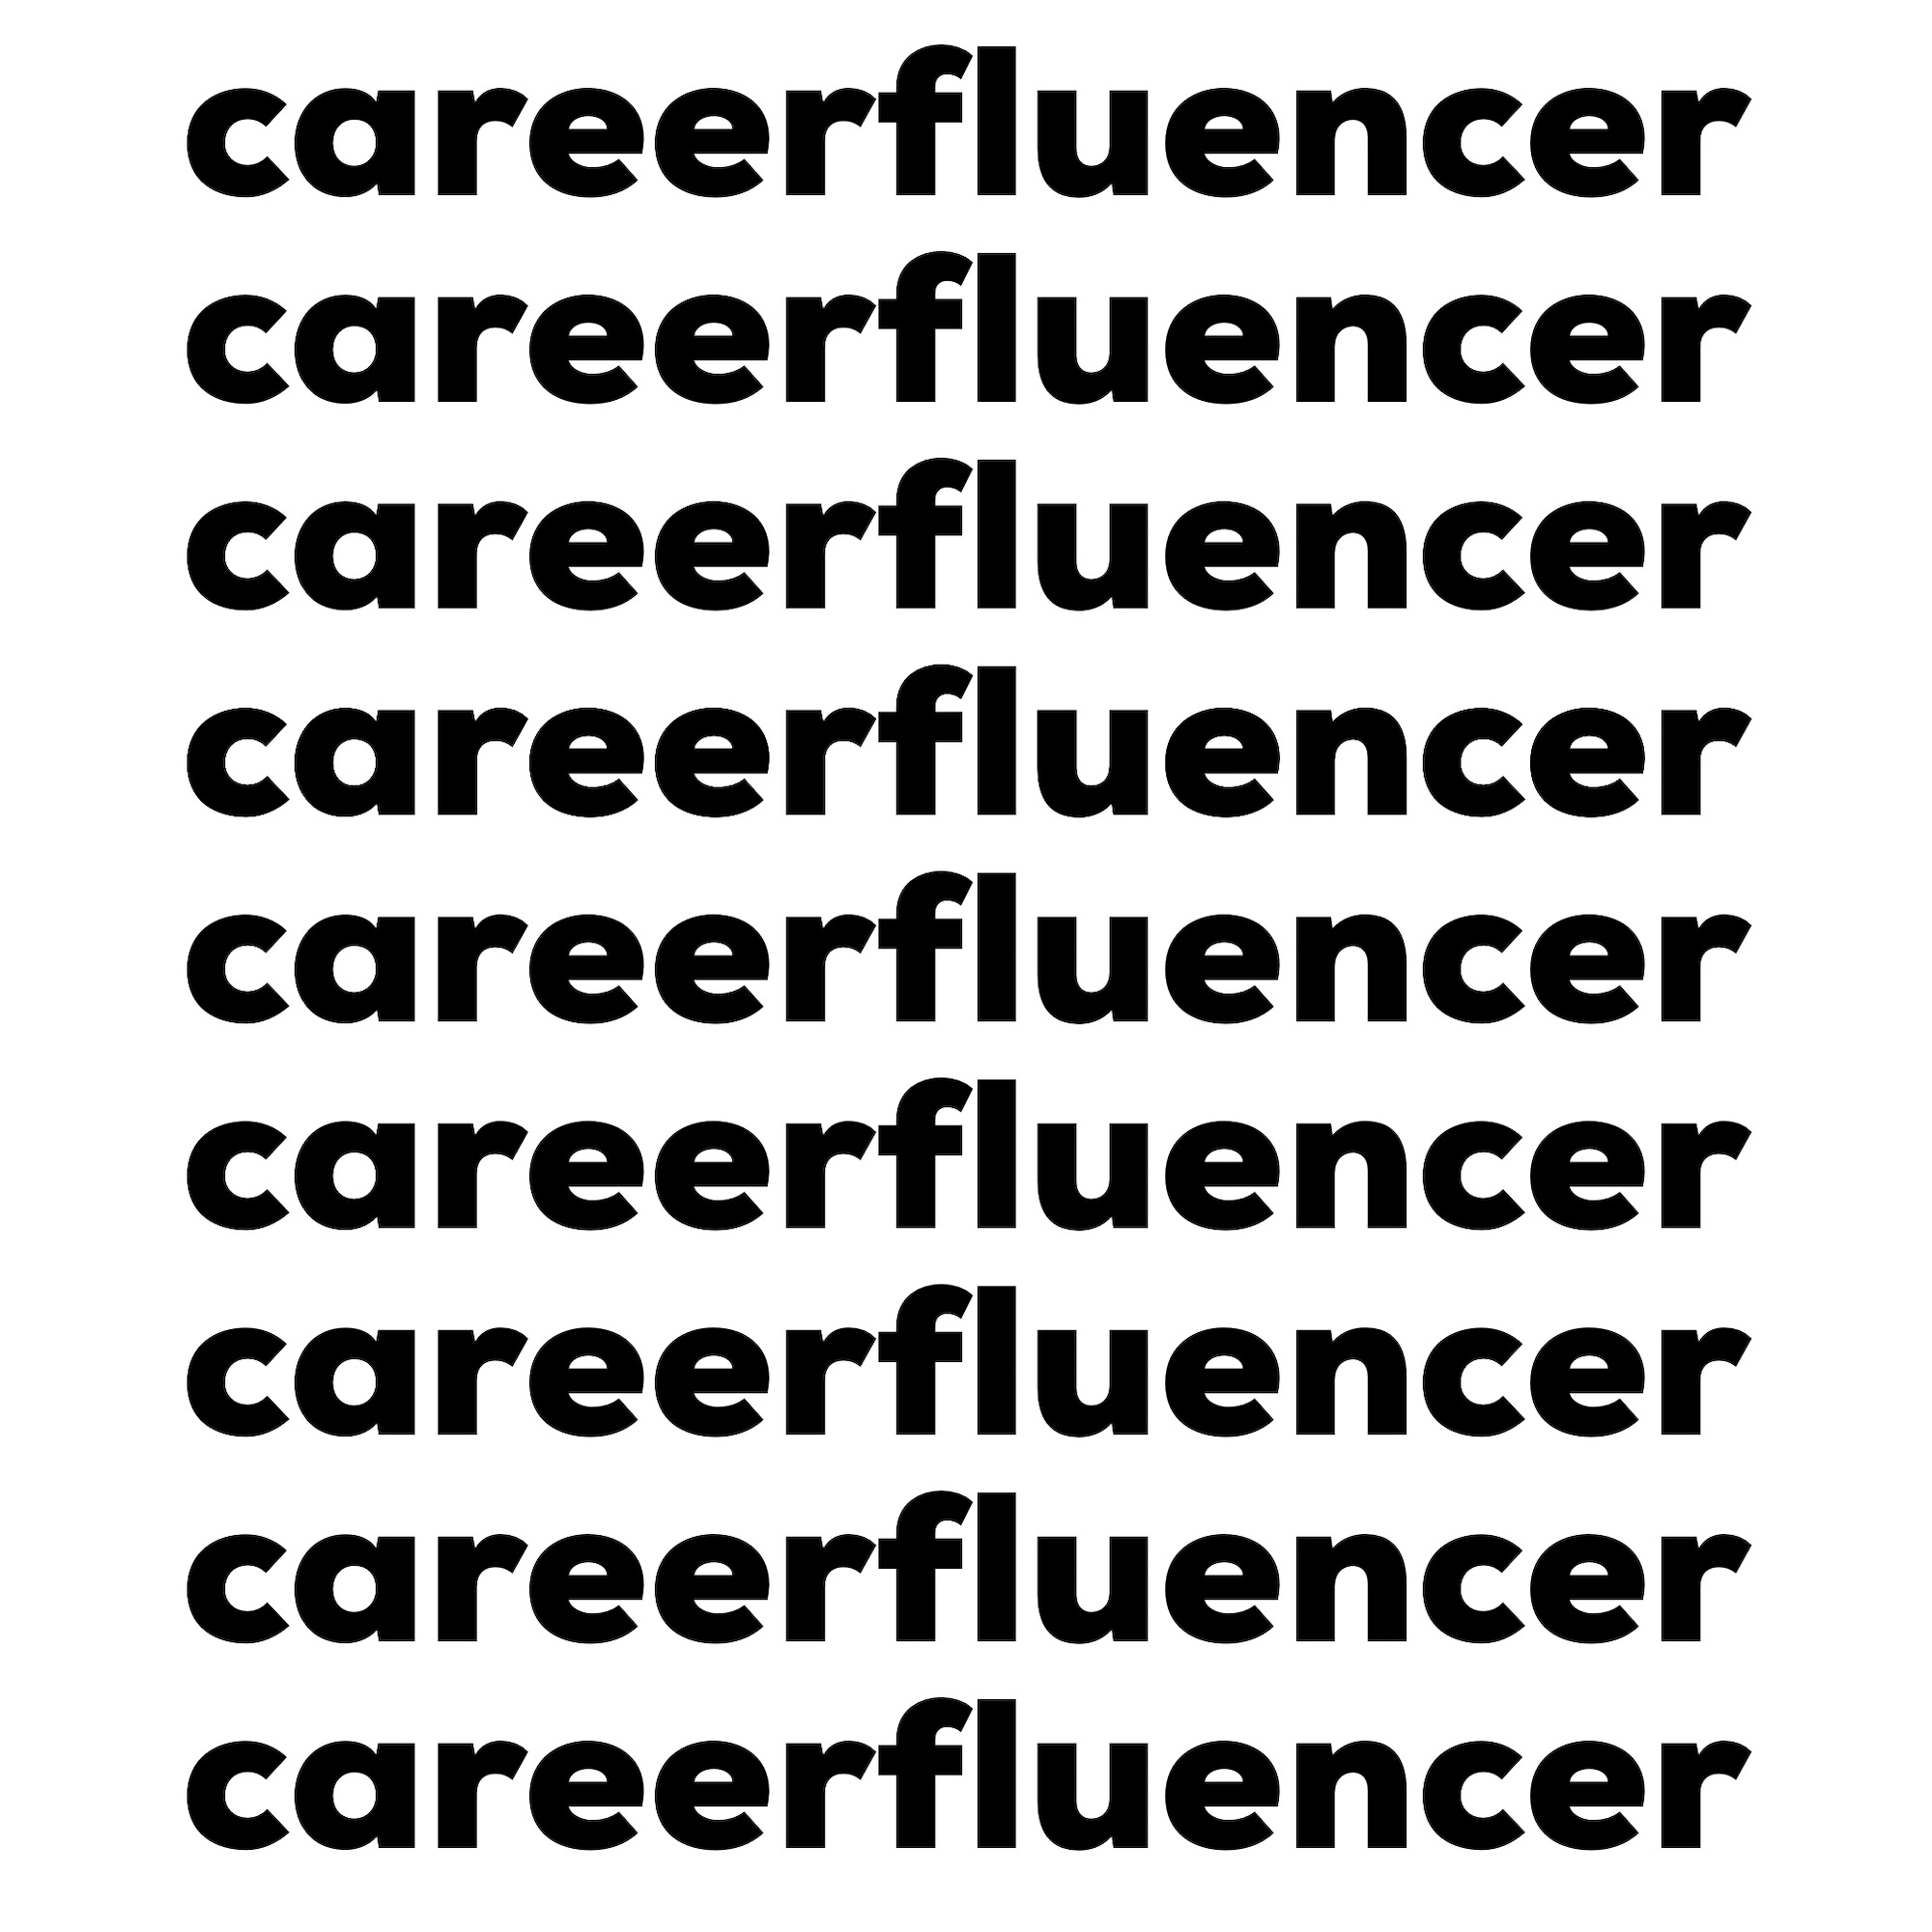 Careerfluencer